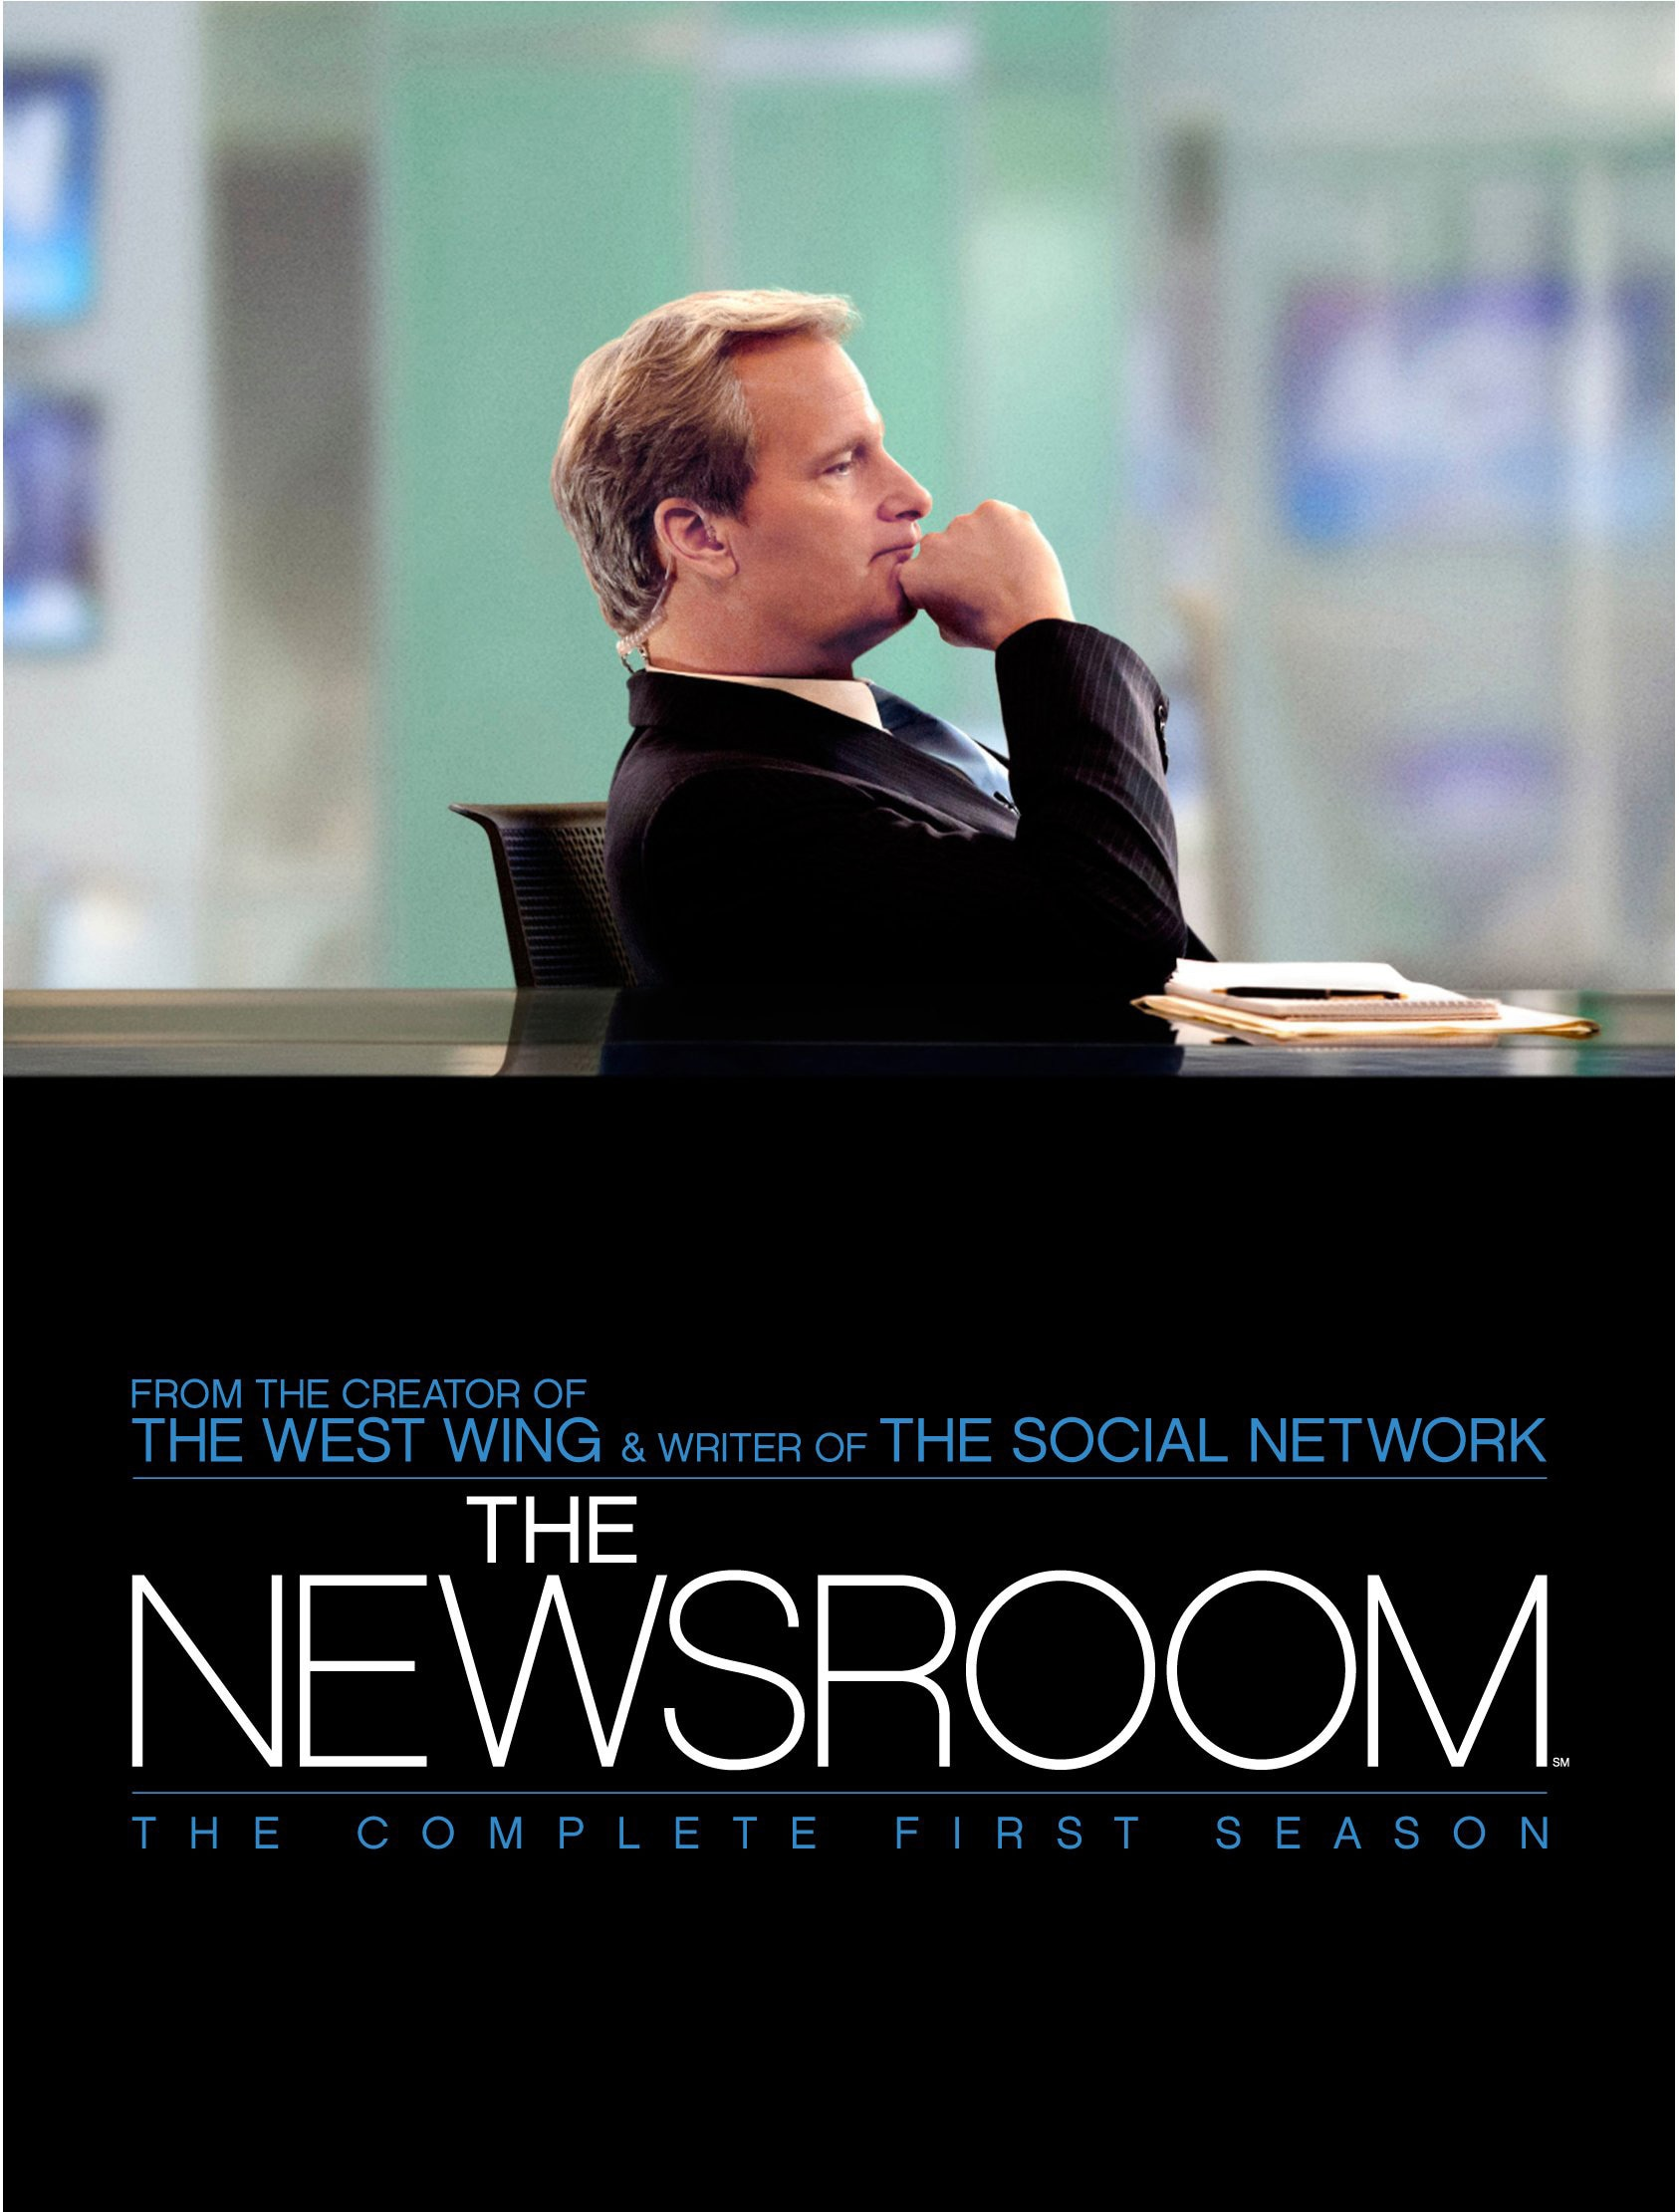 The Newsroom: The Complete First Season (DVD)